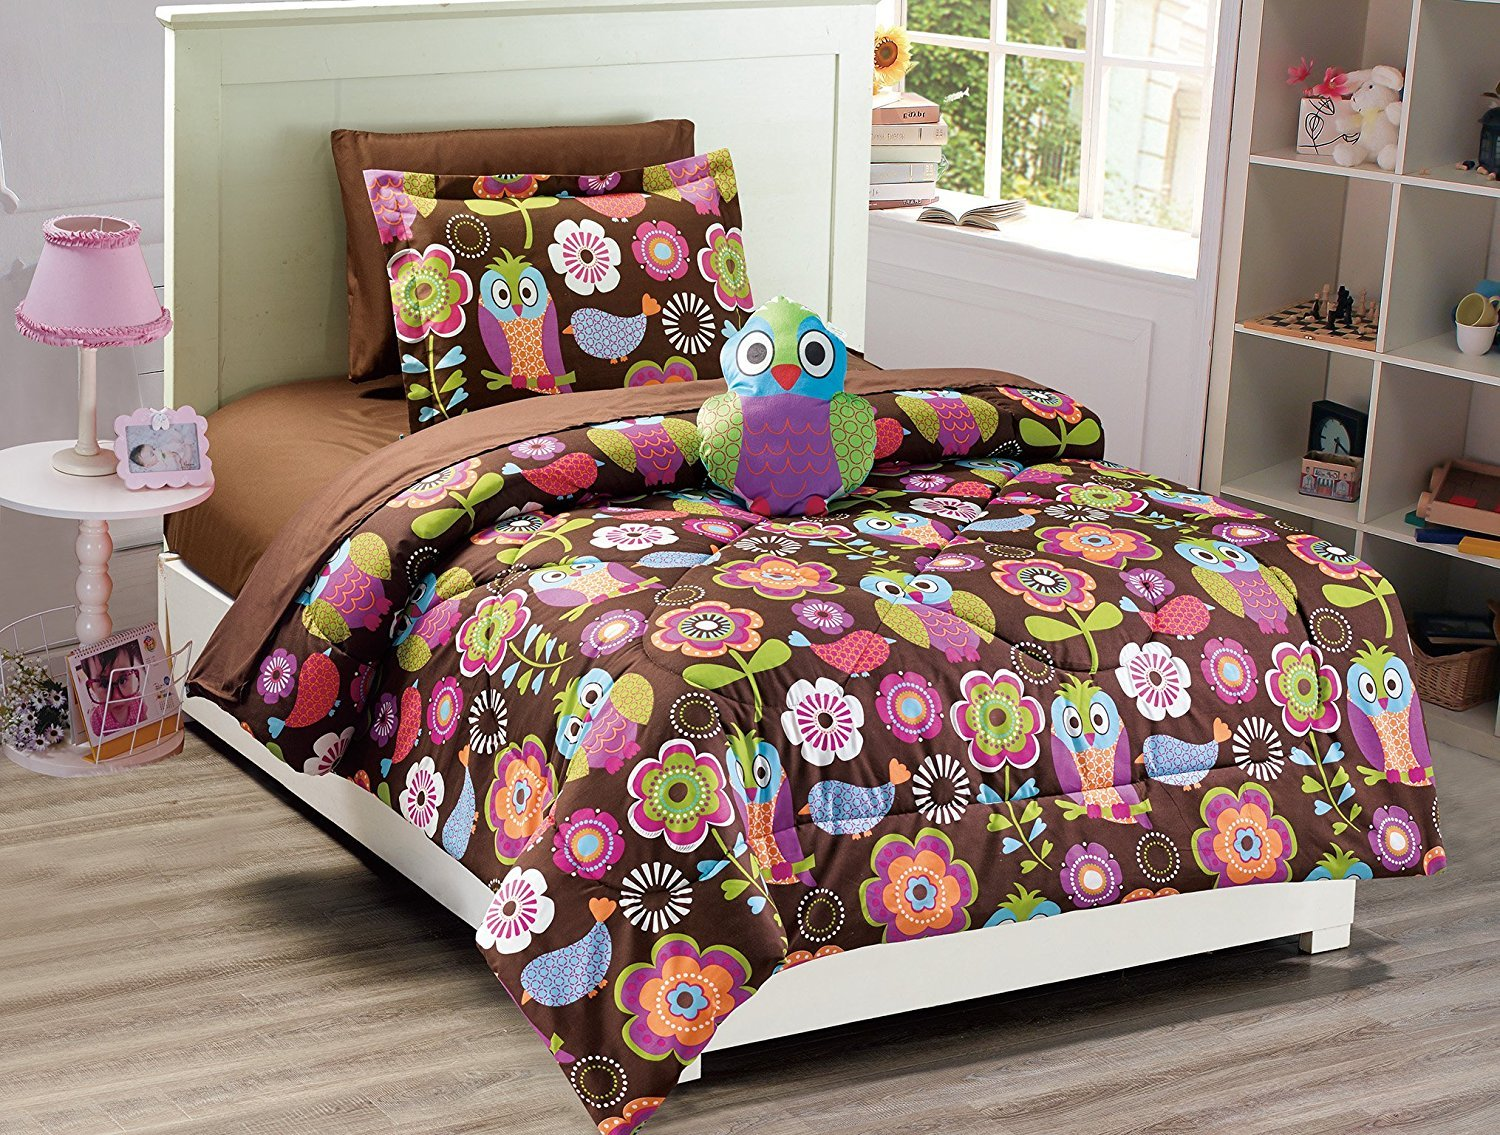 Elegant Home Multicolor Brown Purple Pink Green White Owl Design Fun 6 Piece Comforter Bedding Set for Girls / Kids / Teens Bed In a Bag With Sheet Set & Decorative TOY Pillow # Owl (Twin)